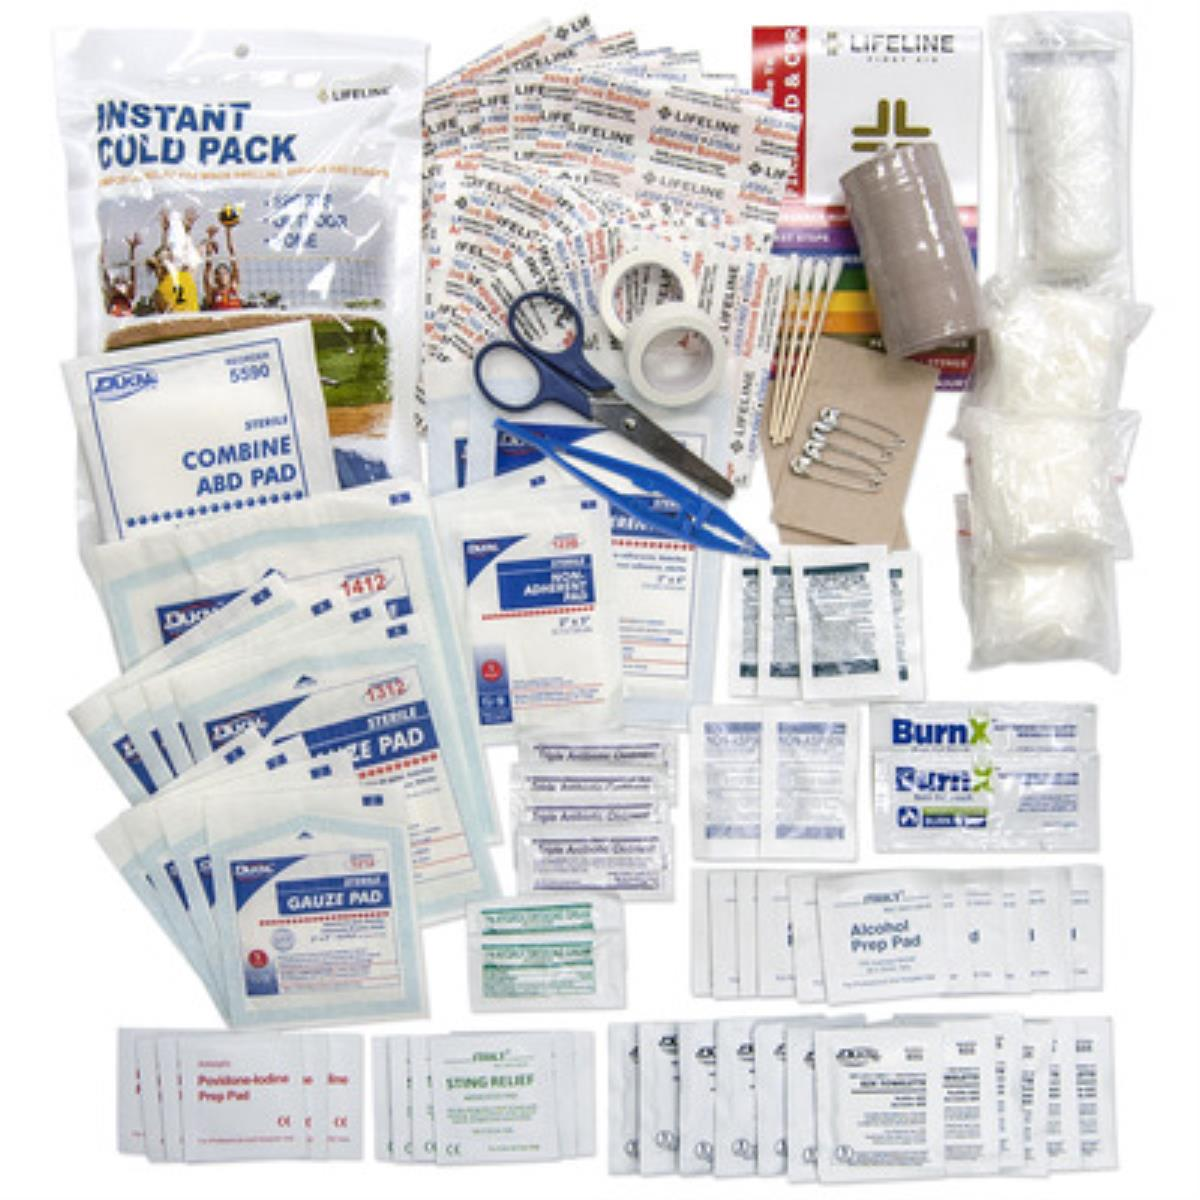 Lifeline 4150 Base Camp First Aid Kit 171 Piece